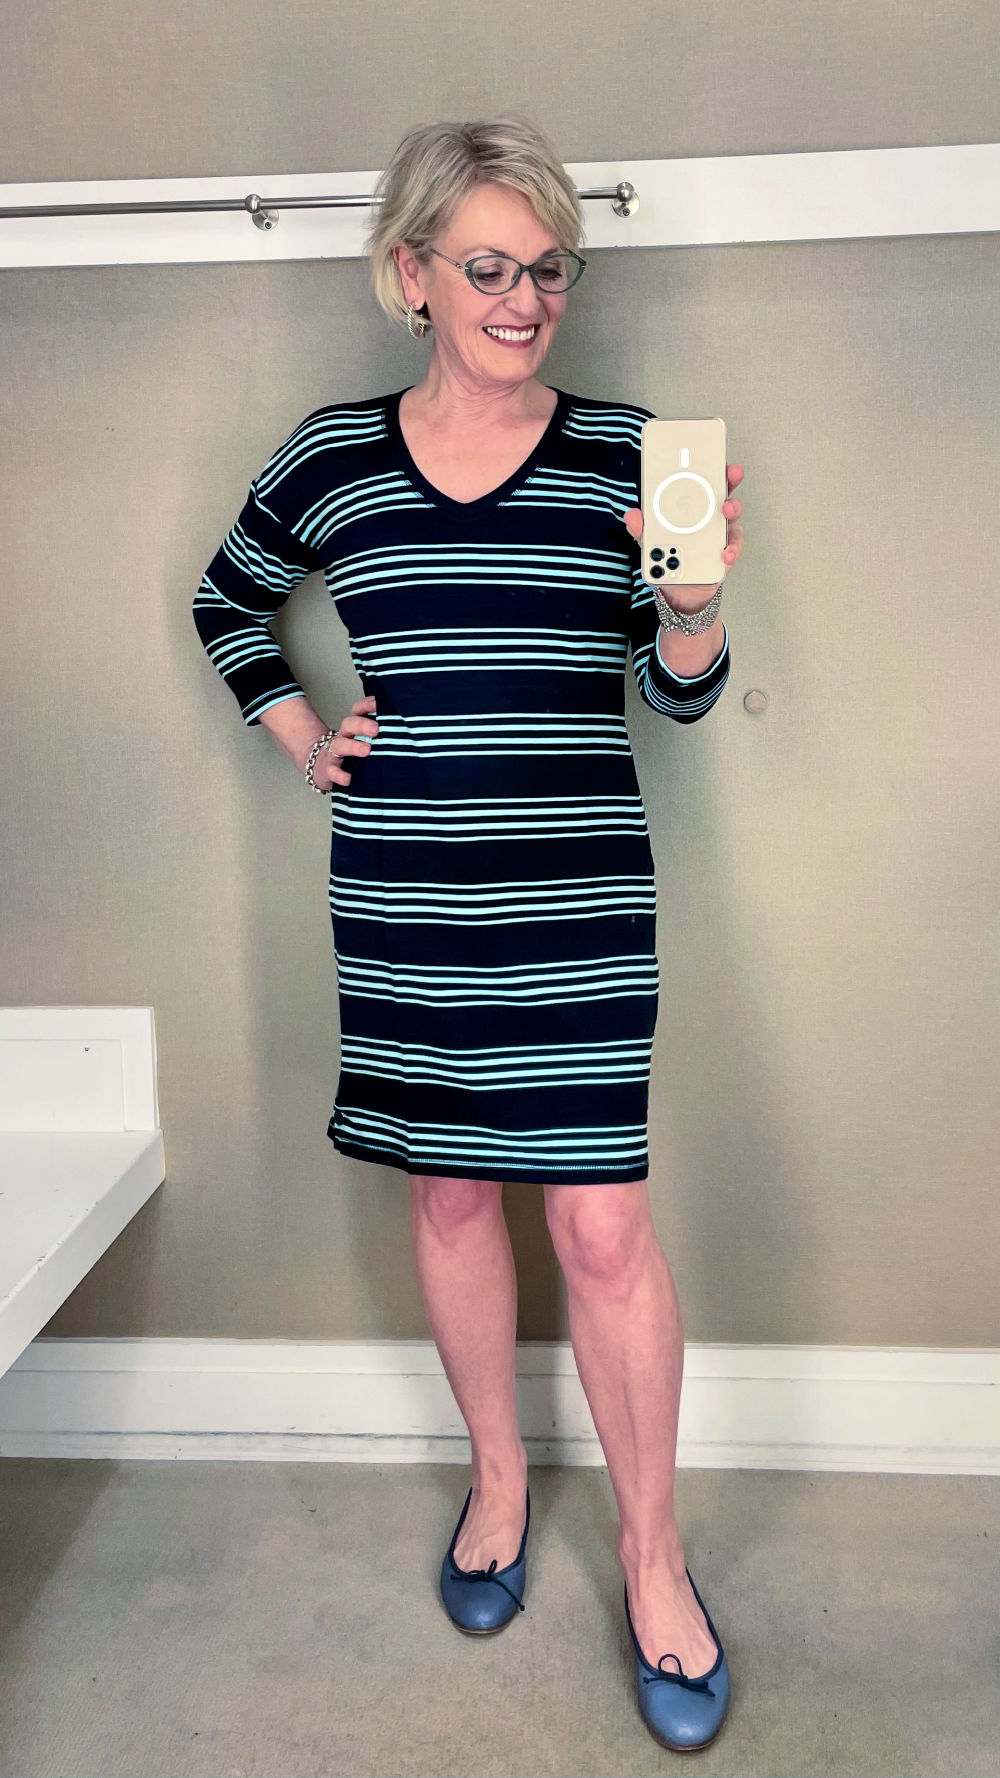 woman trying on striped dress in dressing room